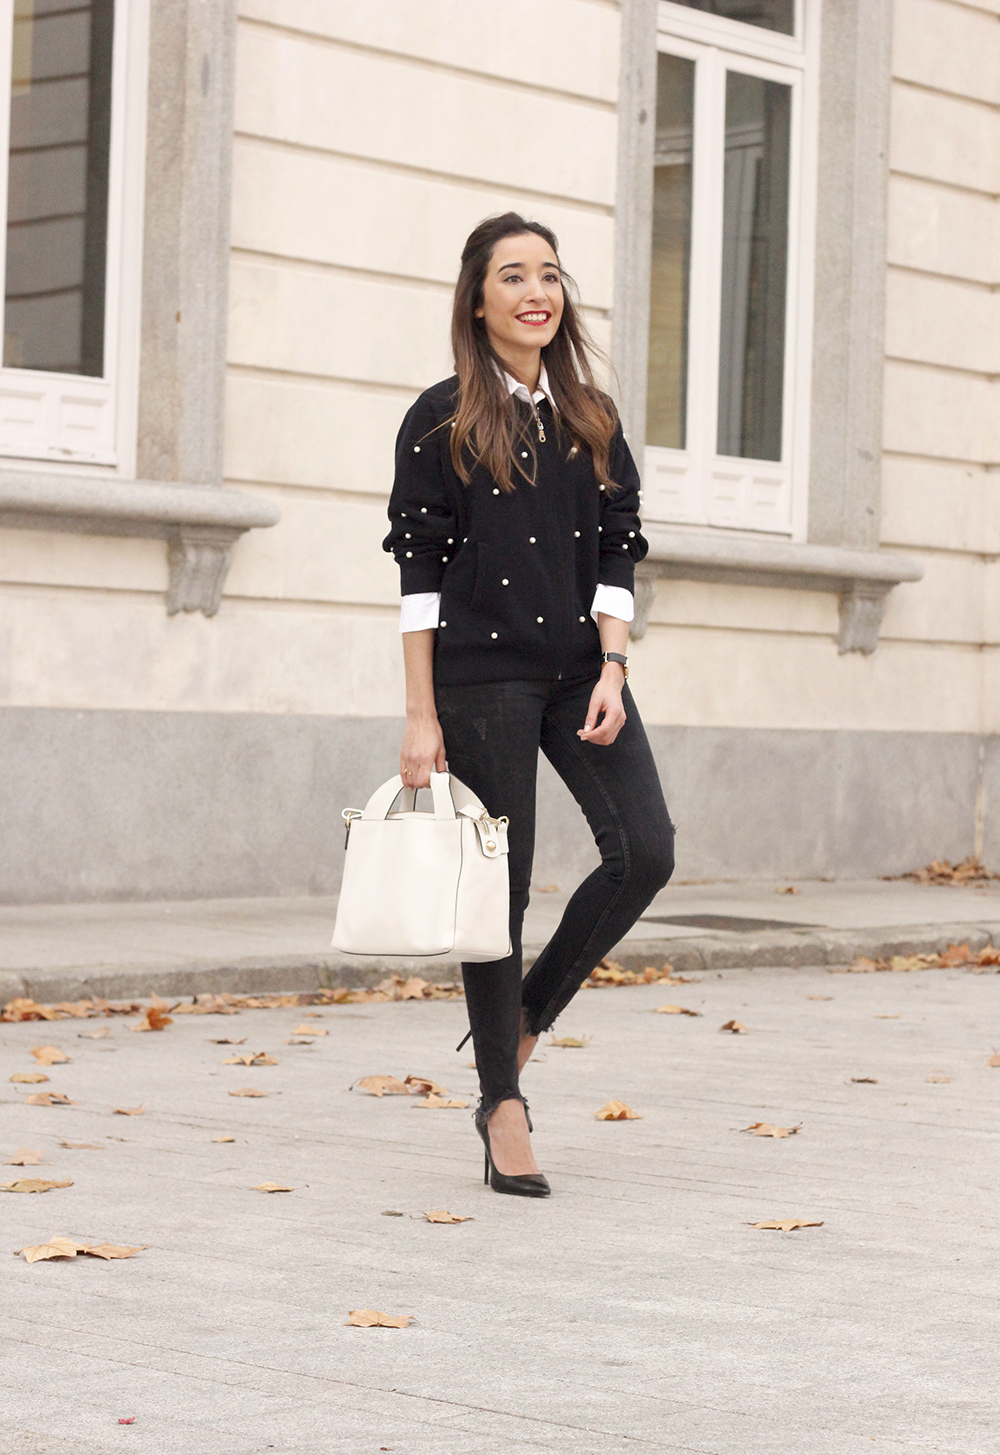 pearl bomber uterqüe black jeans white bag winter outfit 2018 style fashionbomber03